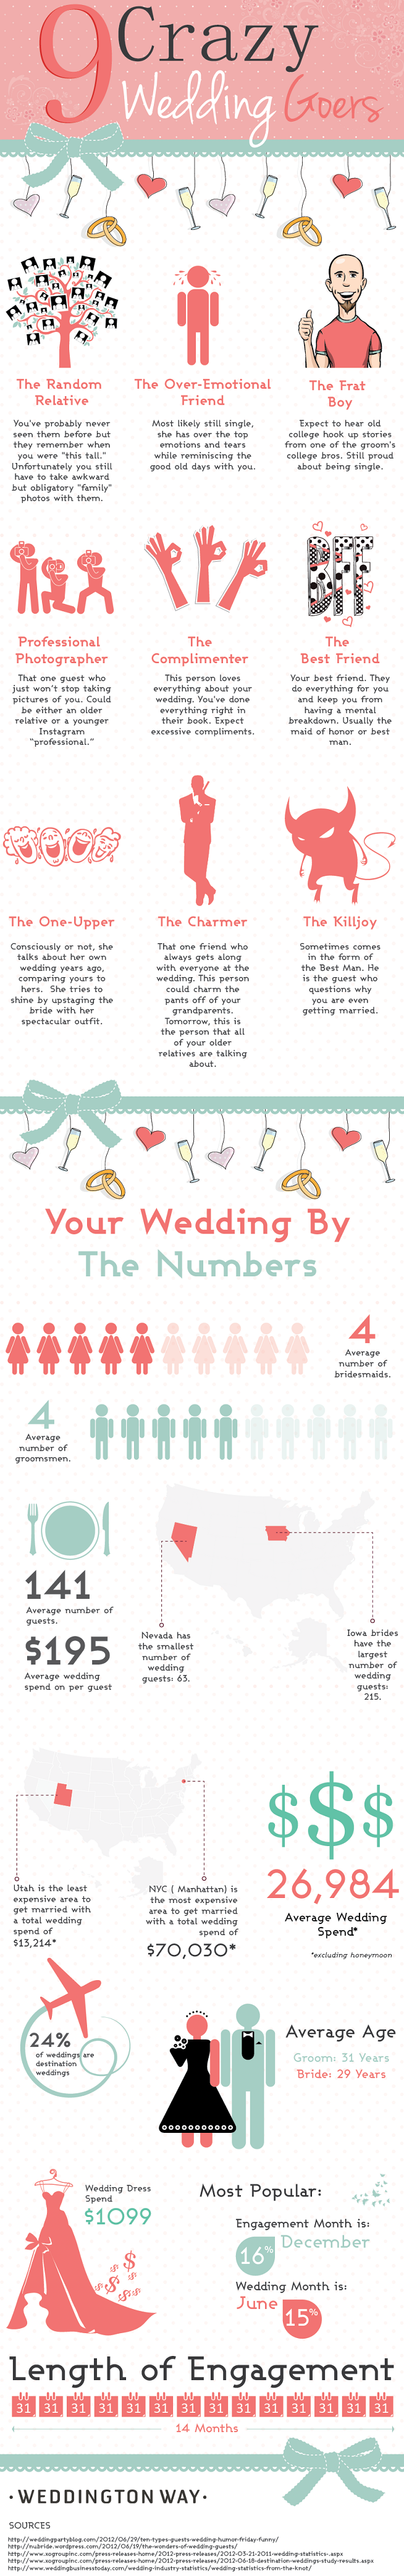 The 9 Types of Crazy Wedding Goers